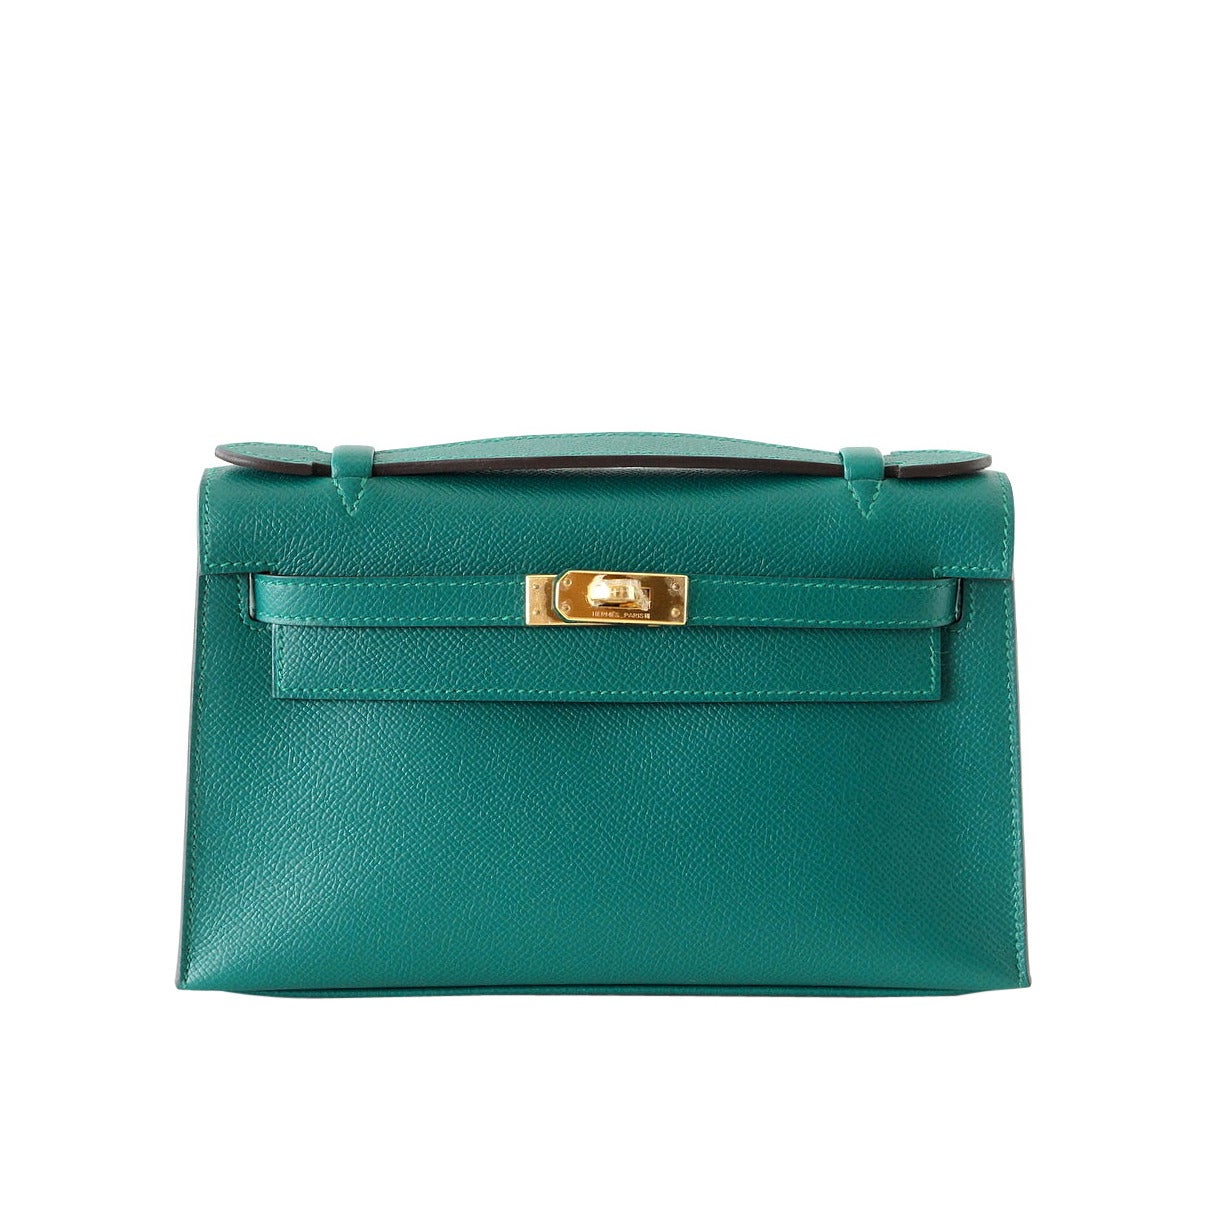 hermes look alike - Vintage Herm��s Clutches - 150 For Sale at 1stdibs - Page 3